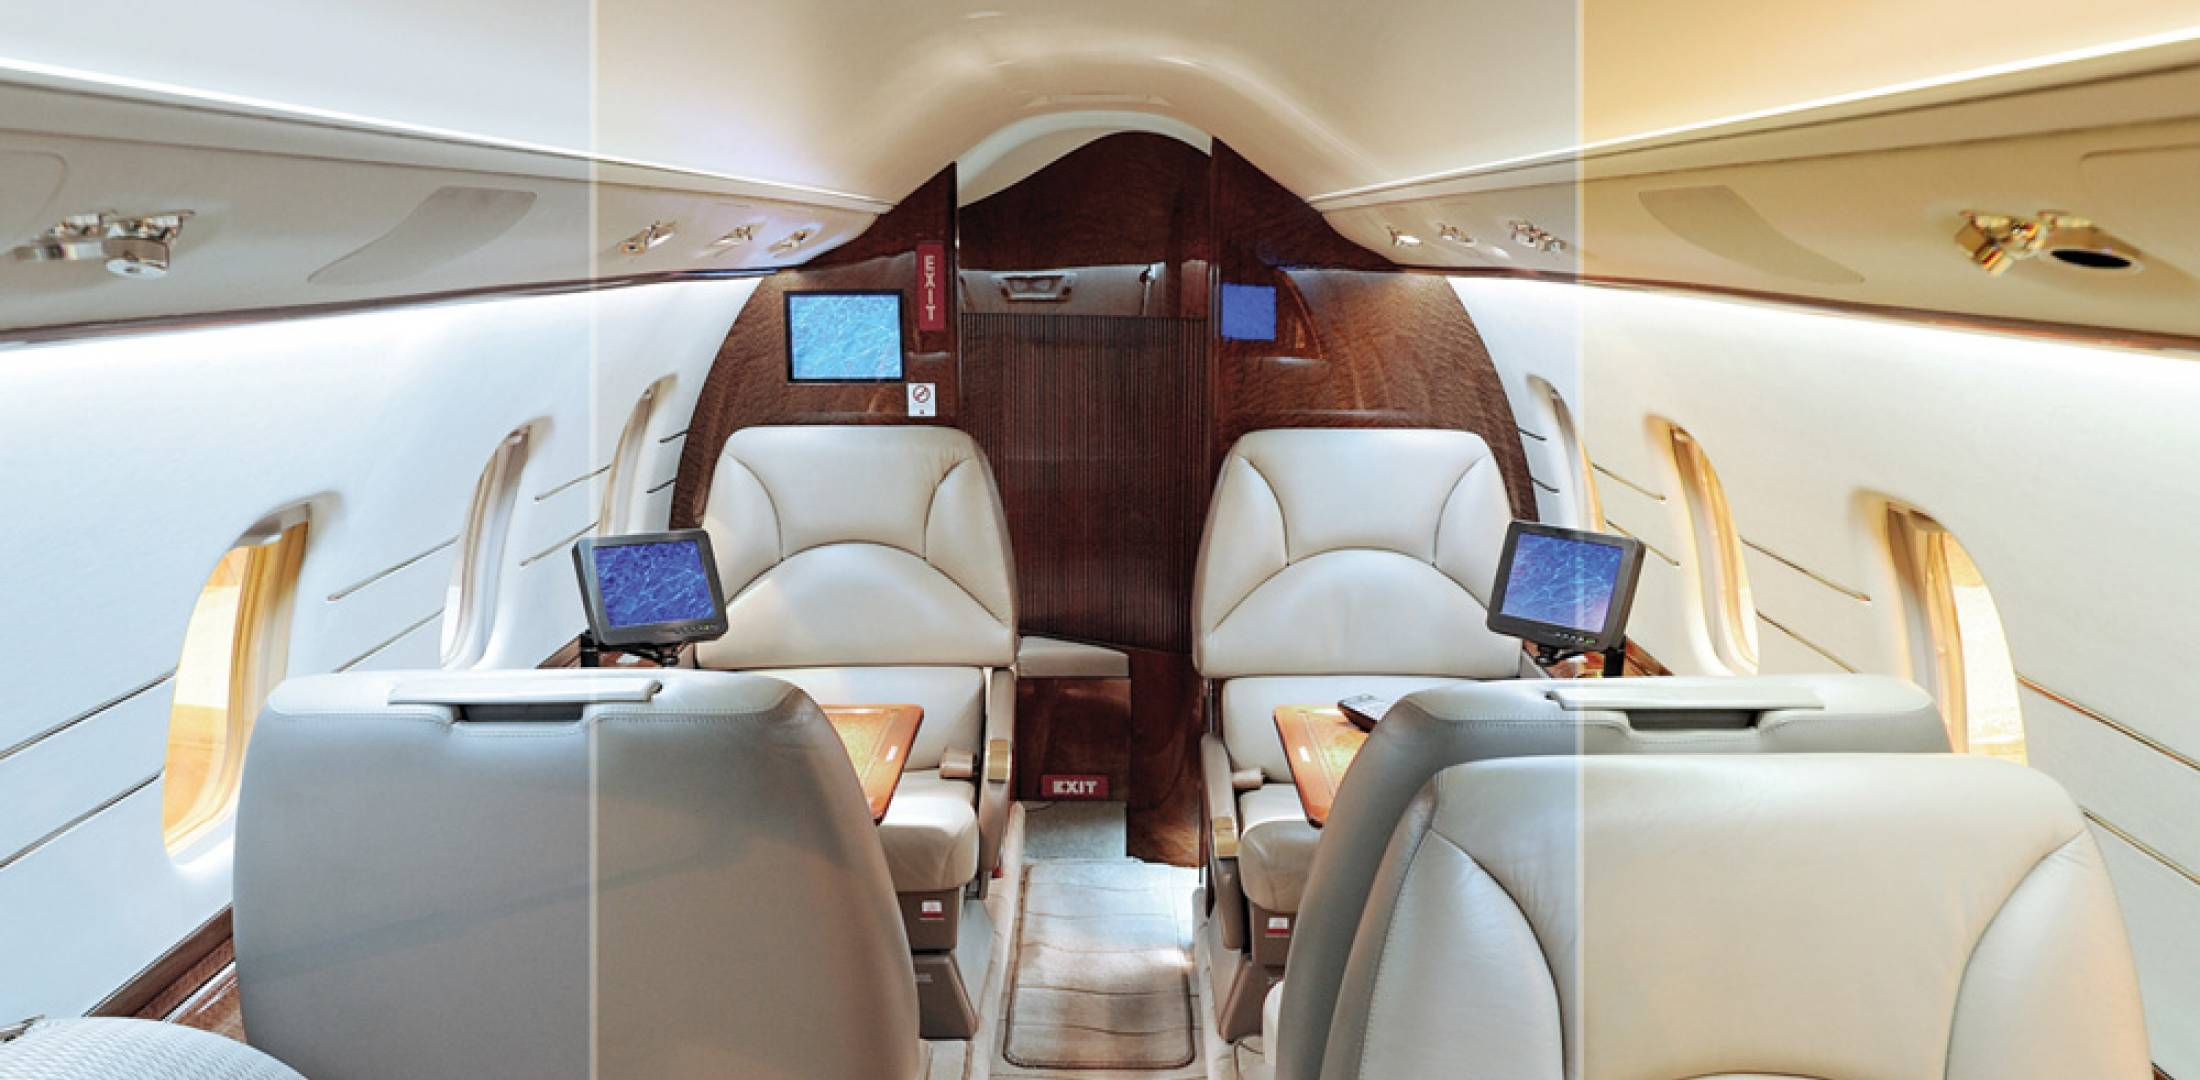 Emteq's Daylight lighting system allows for variable LED lighting that can replicate multiple shades of white, all controlled through the cabin management system.